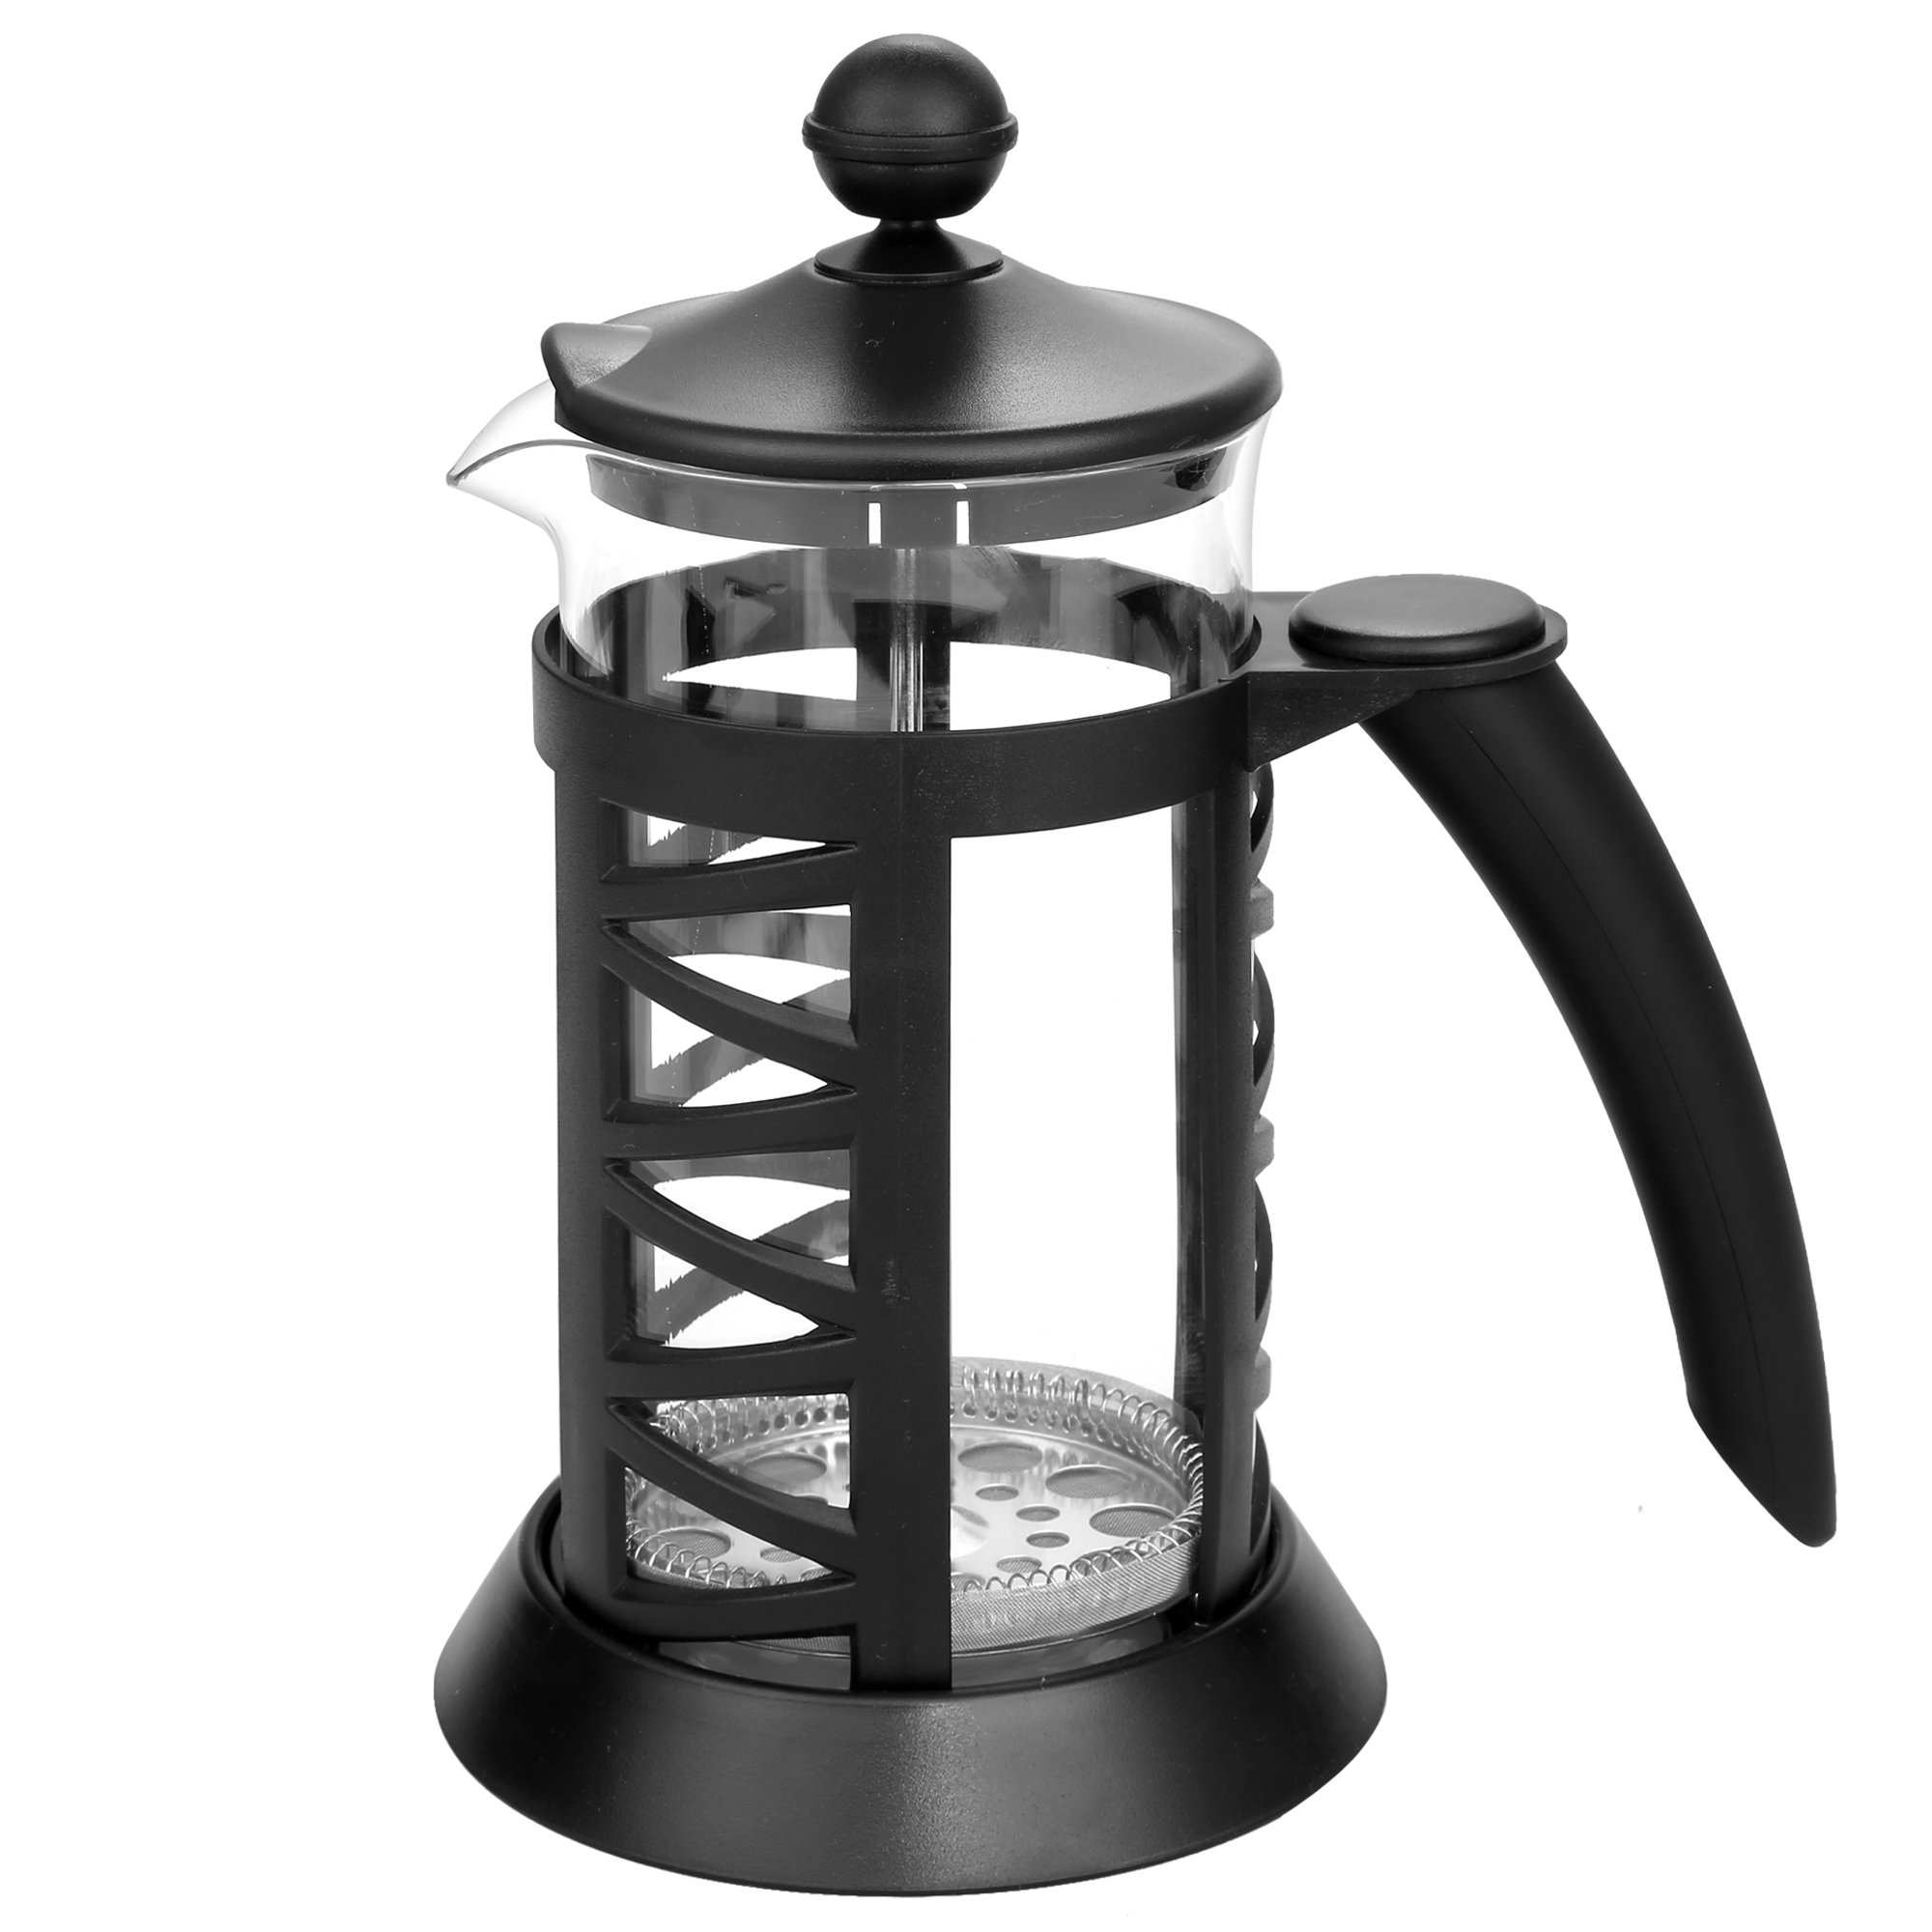 Noeler 8 Cups French Press Tea & Coffee maker, French Press Coffee Plunger for Home and Office,34oz,1L (black2)